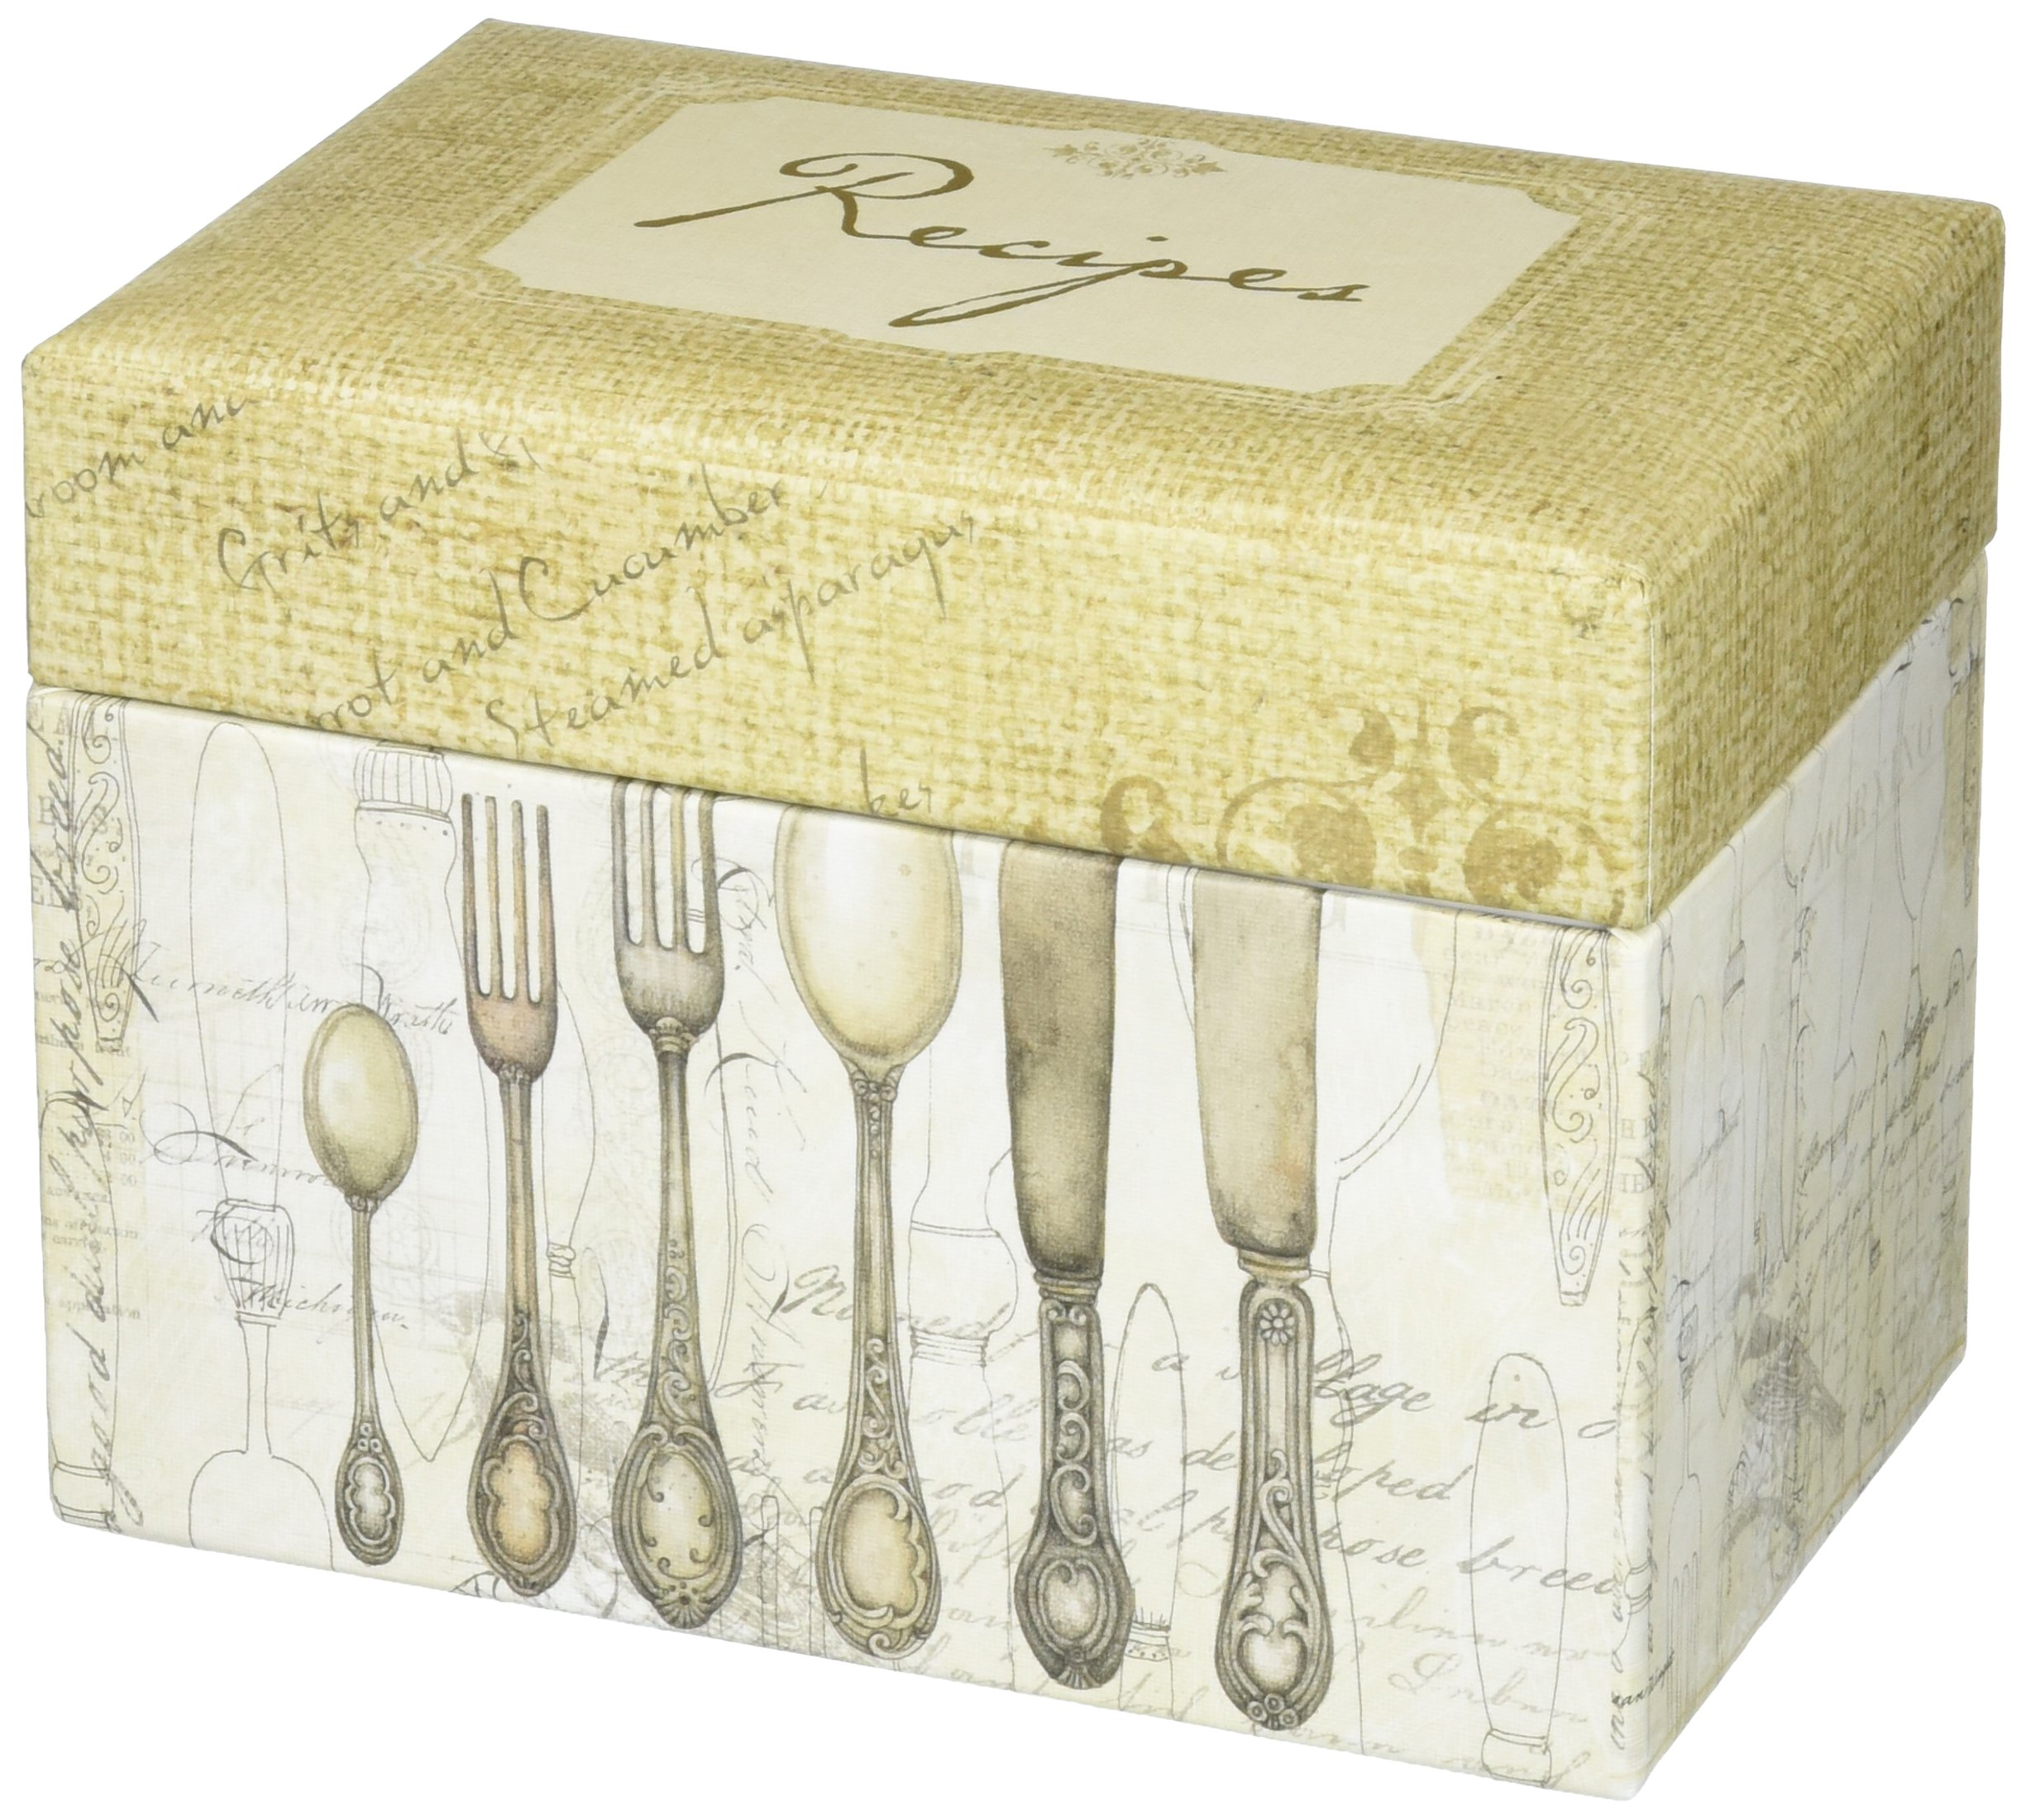 C.R. Gibson Rustic Recipe Box with Tab Dividers and Coordinating Recipe Cards, 53pc, 6.5'' W x 4.75'' H x 4.25'' D by C.R. Gibson